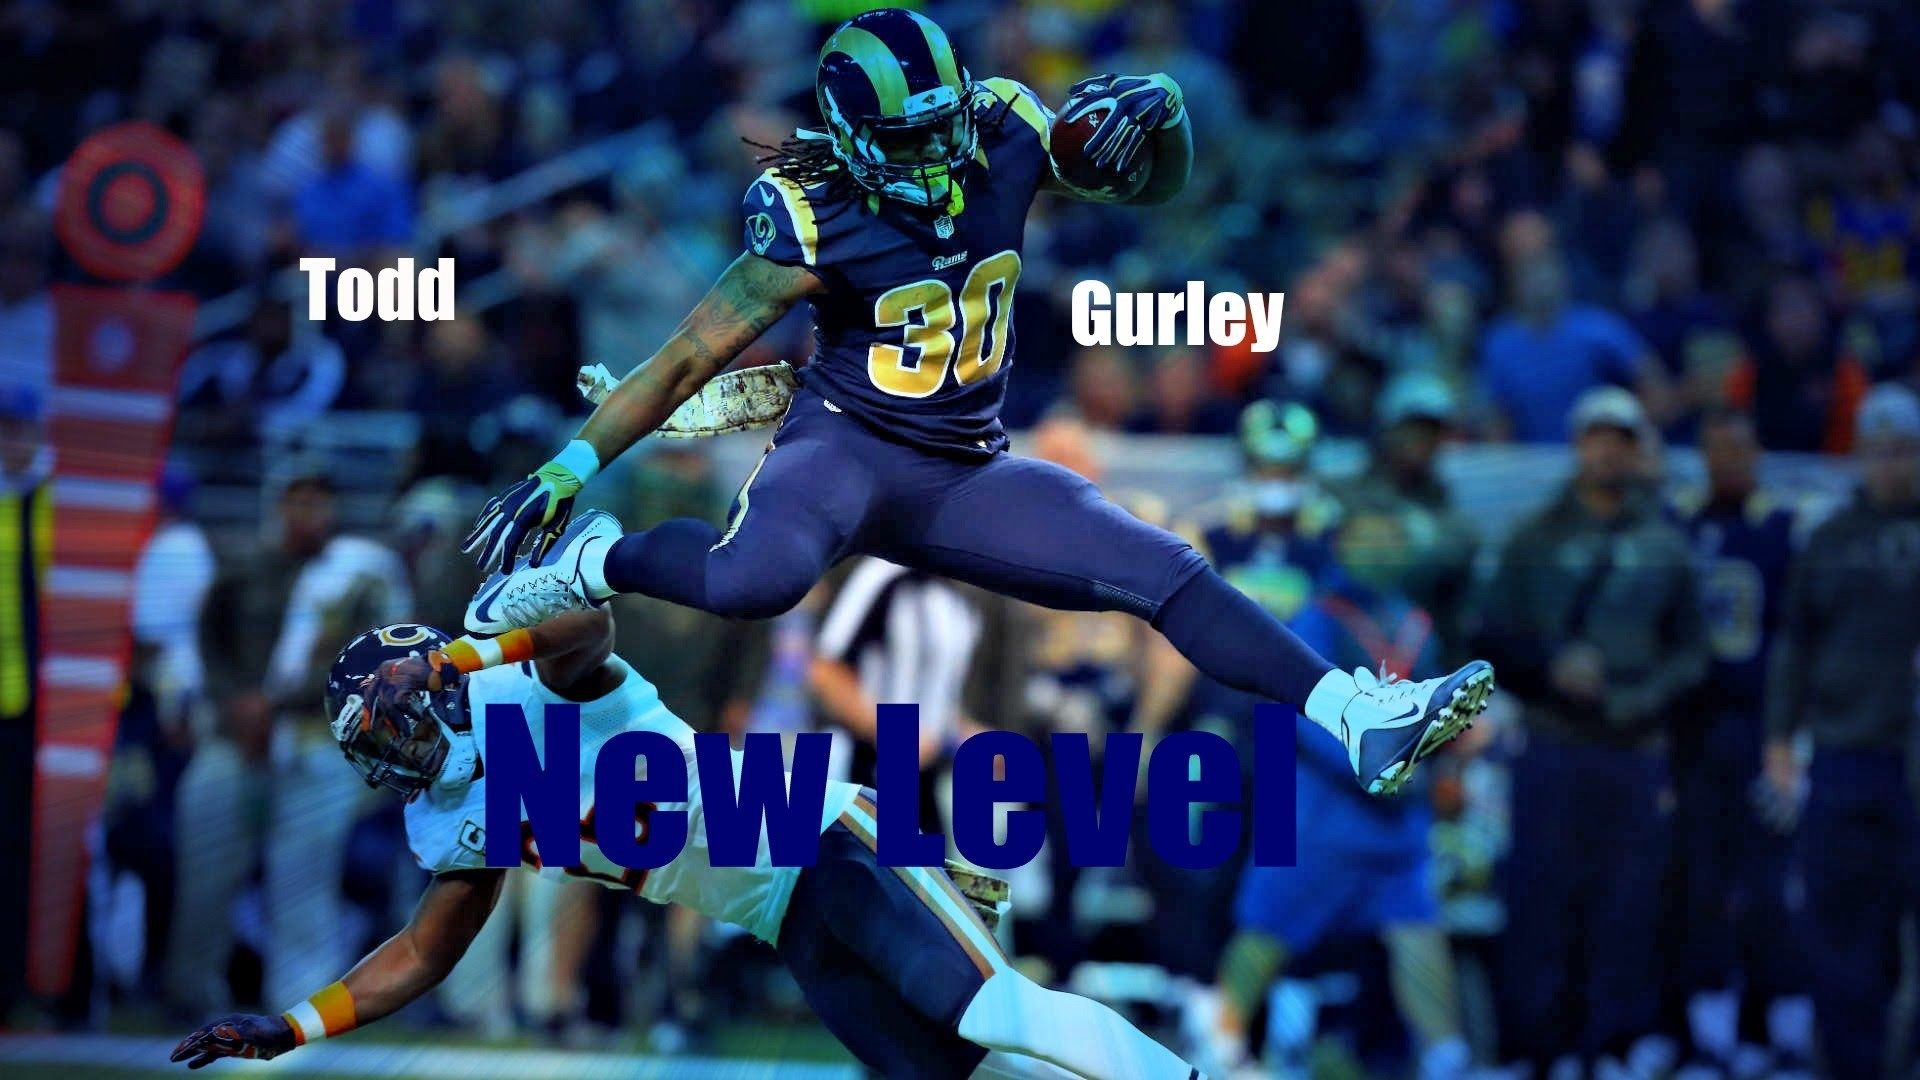 Todd Gurley Wallpapers (76+ images)